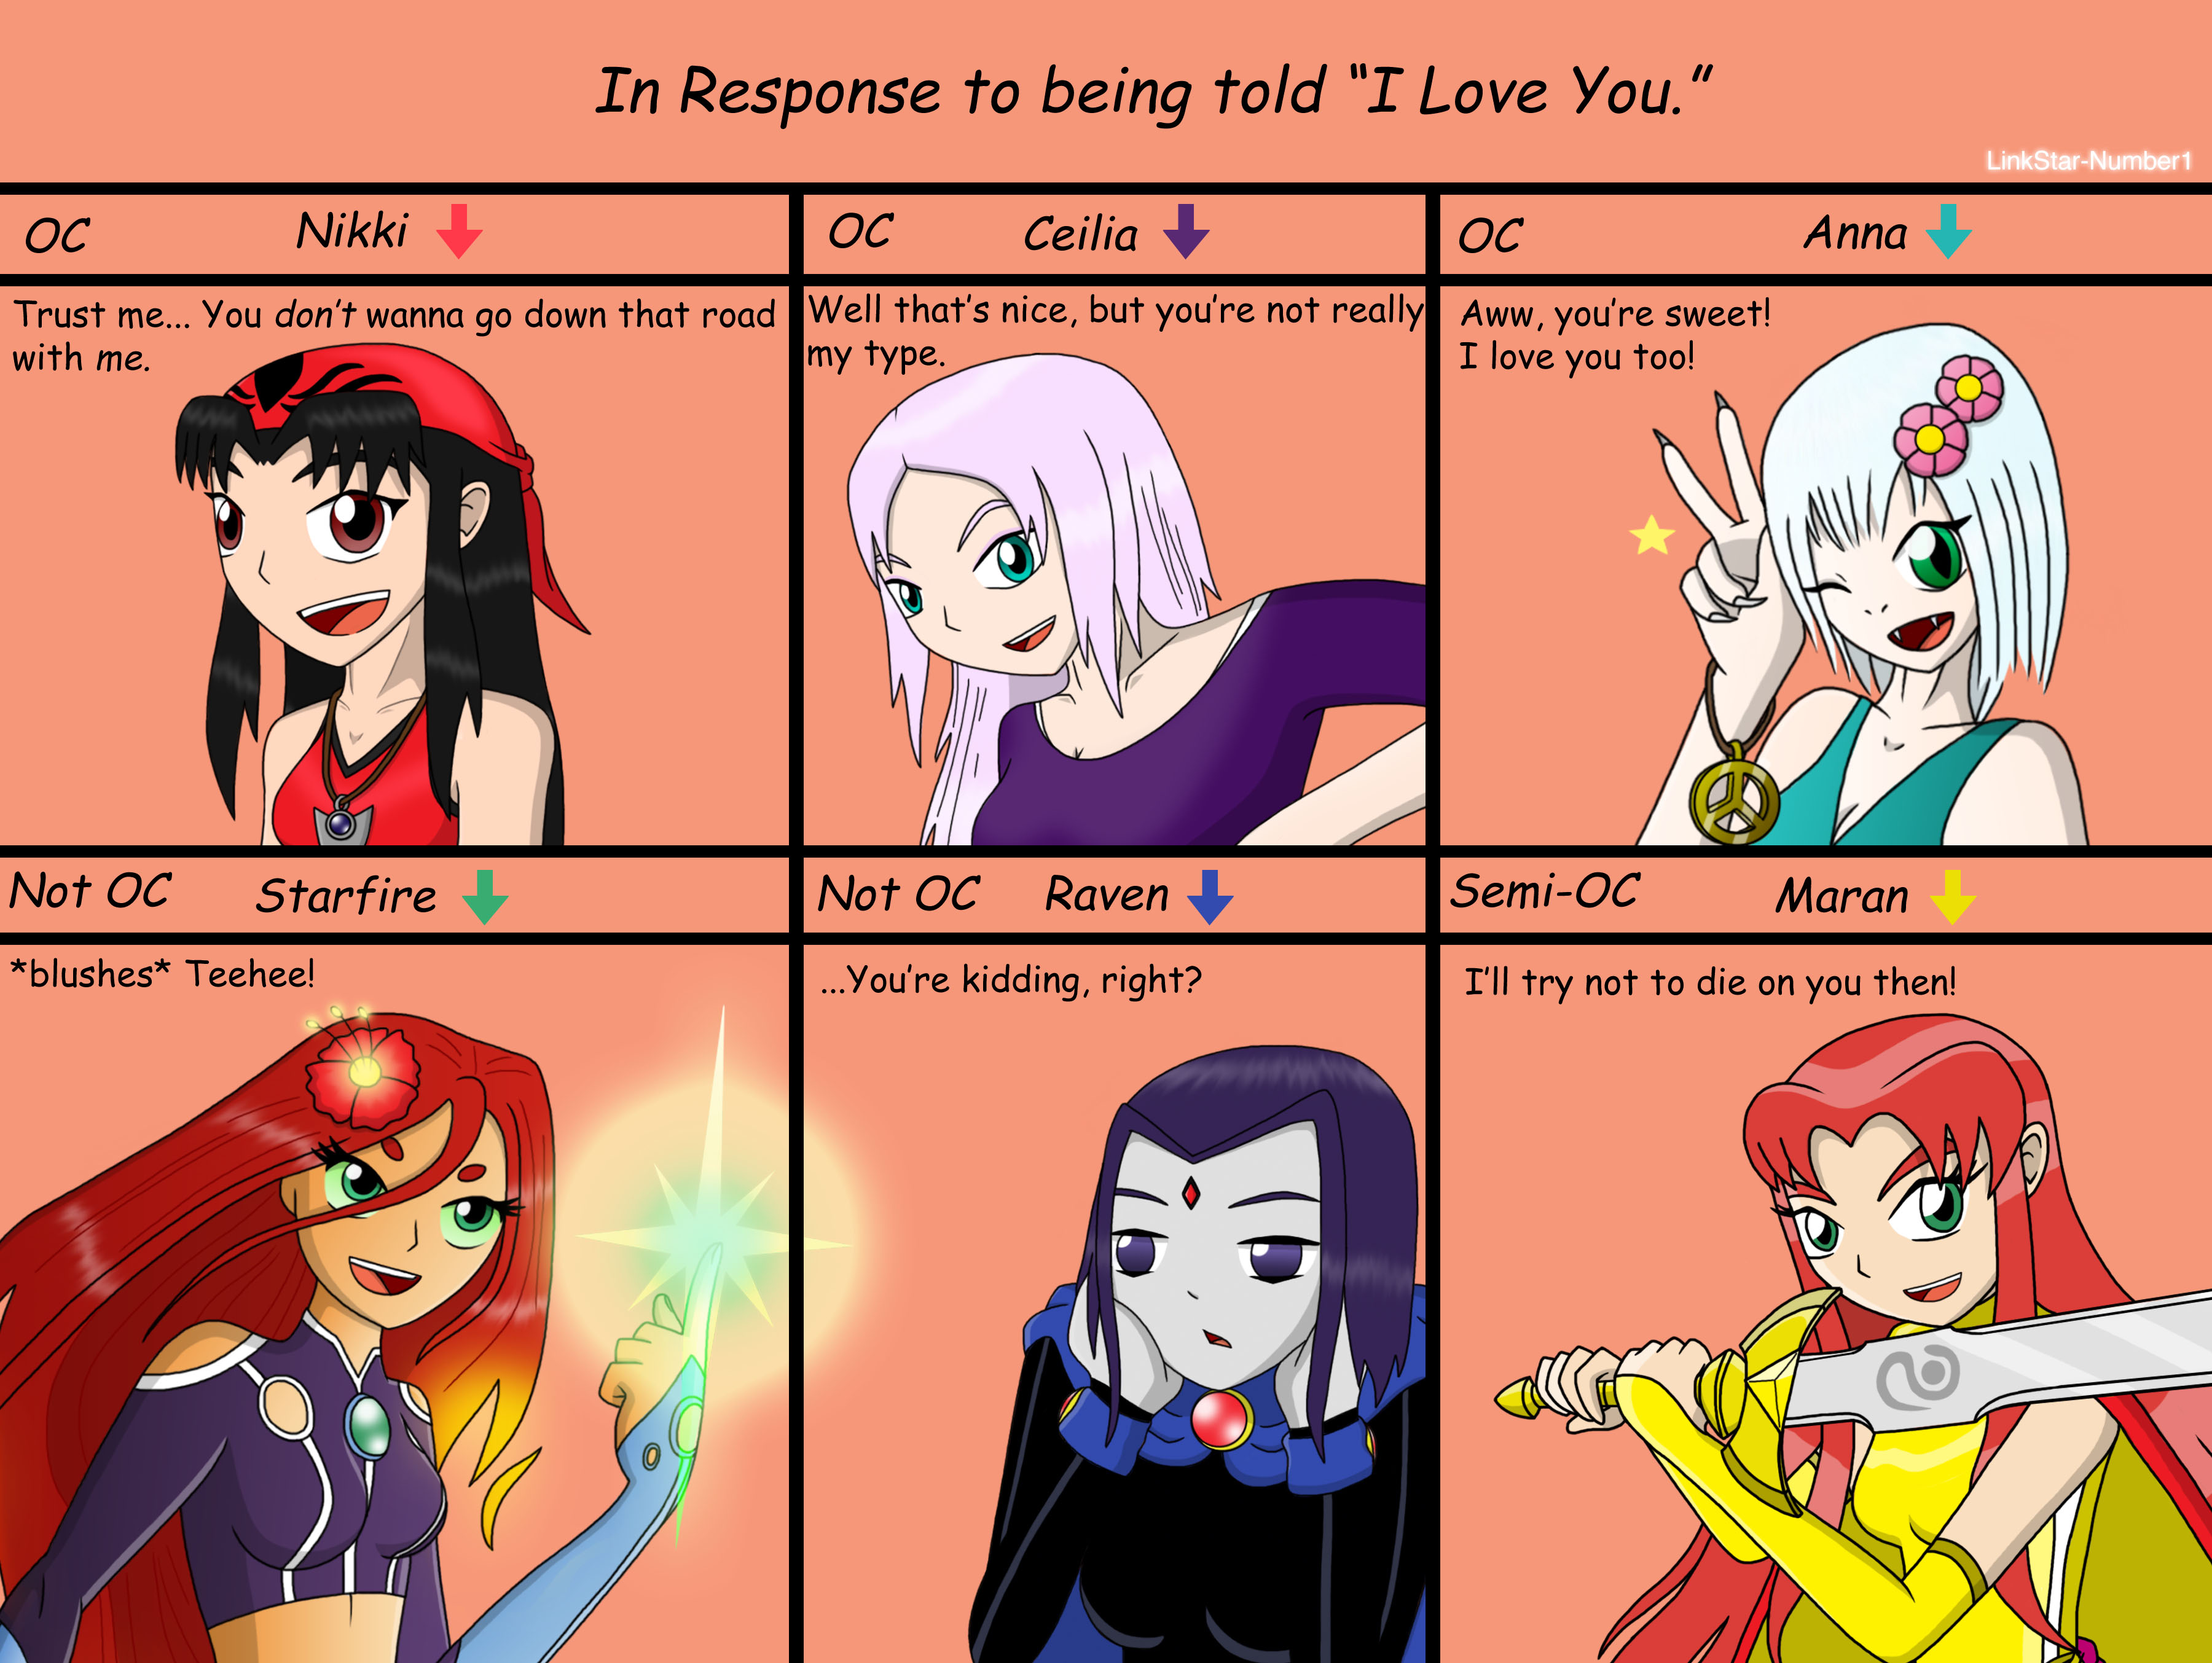 Character Meme - I Love You by LinkStar-Number1 on DeviantArt Zelda In Response To Being Told